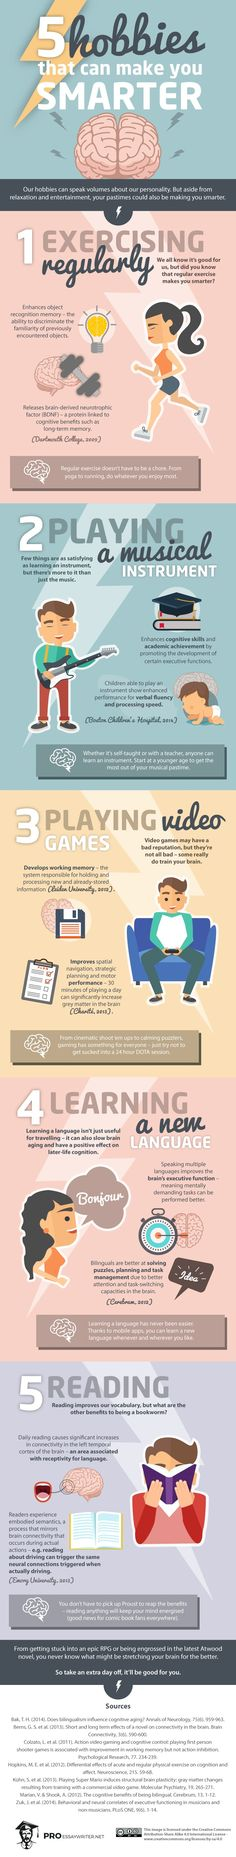 5 Hobbies That Can Make You Smarter [Infographic], via @HubSpot